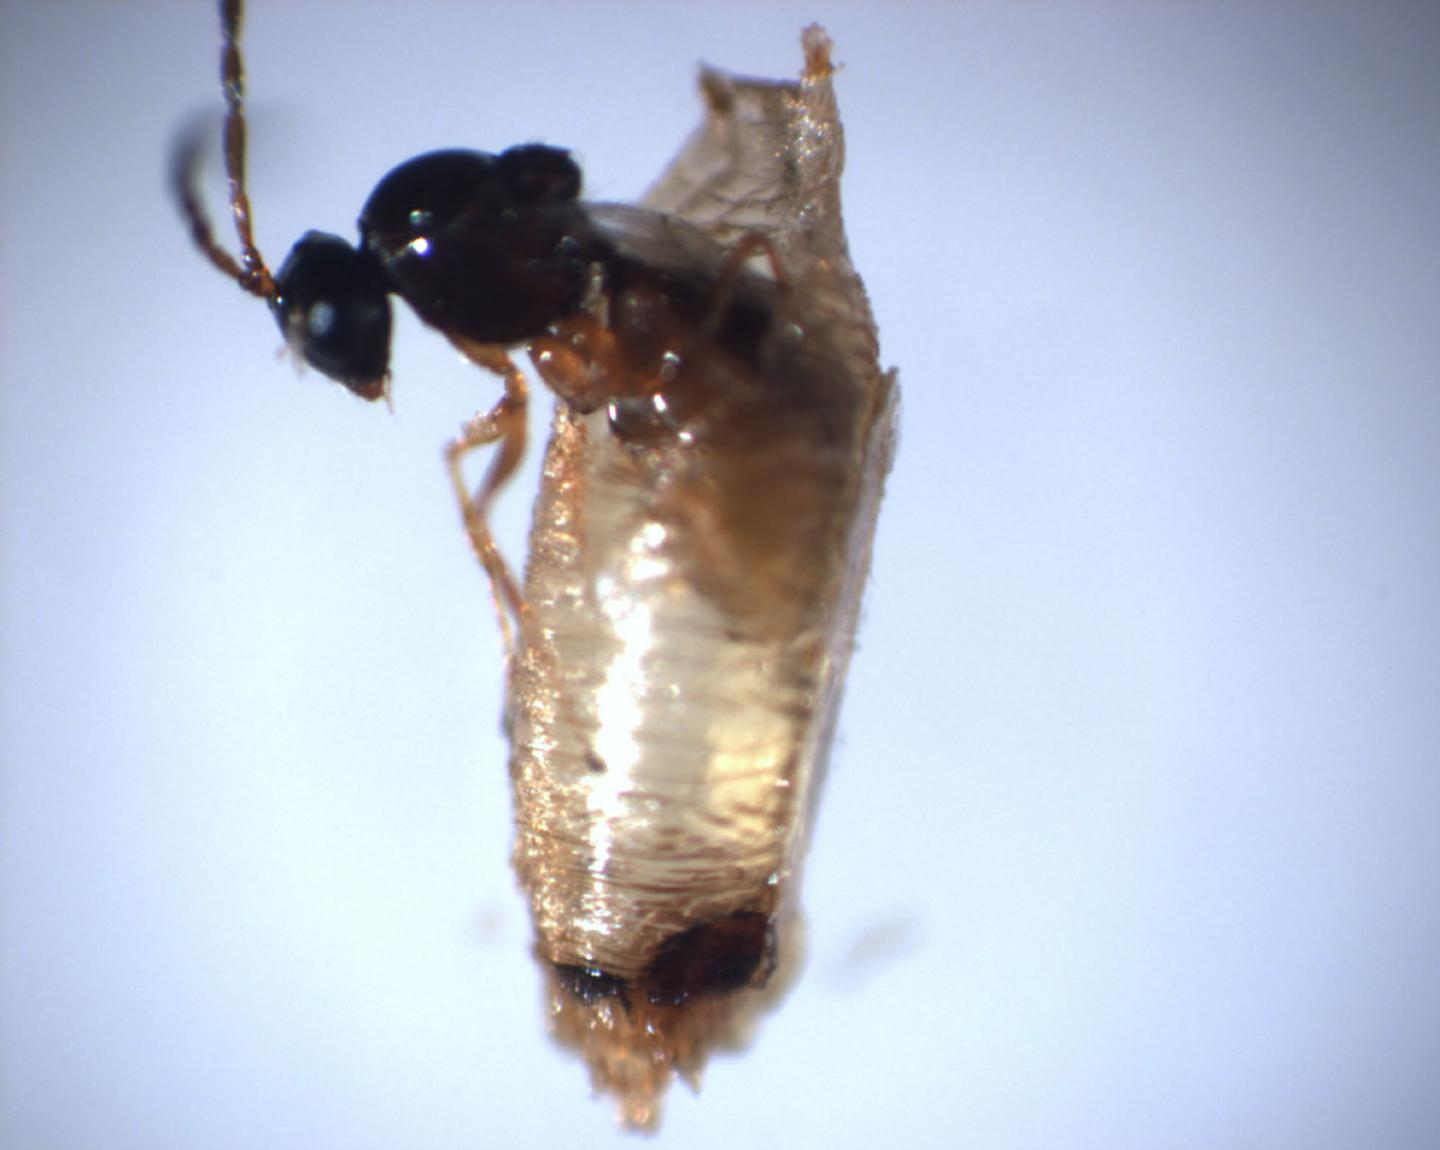 CCNY-led Research Team Identifies New Organelle in Parasitic Wasp Venom